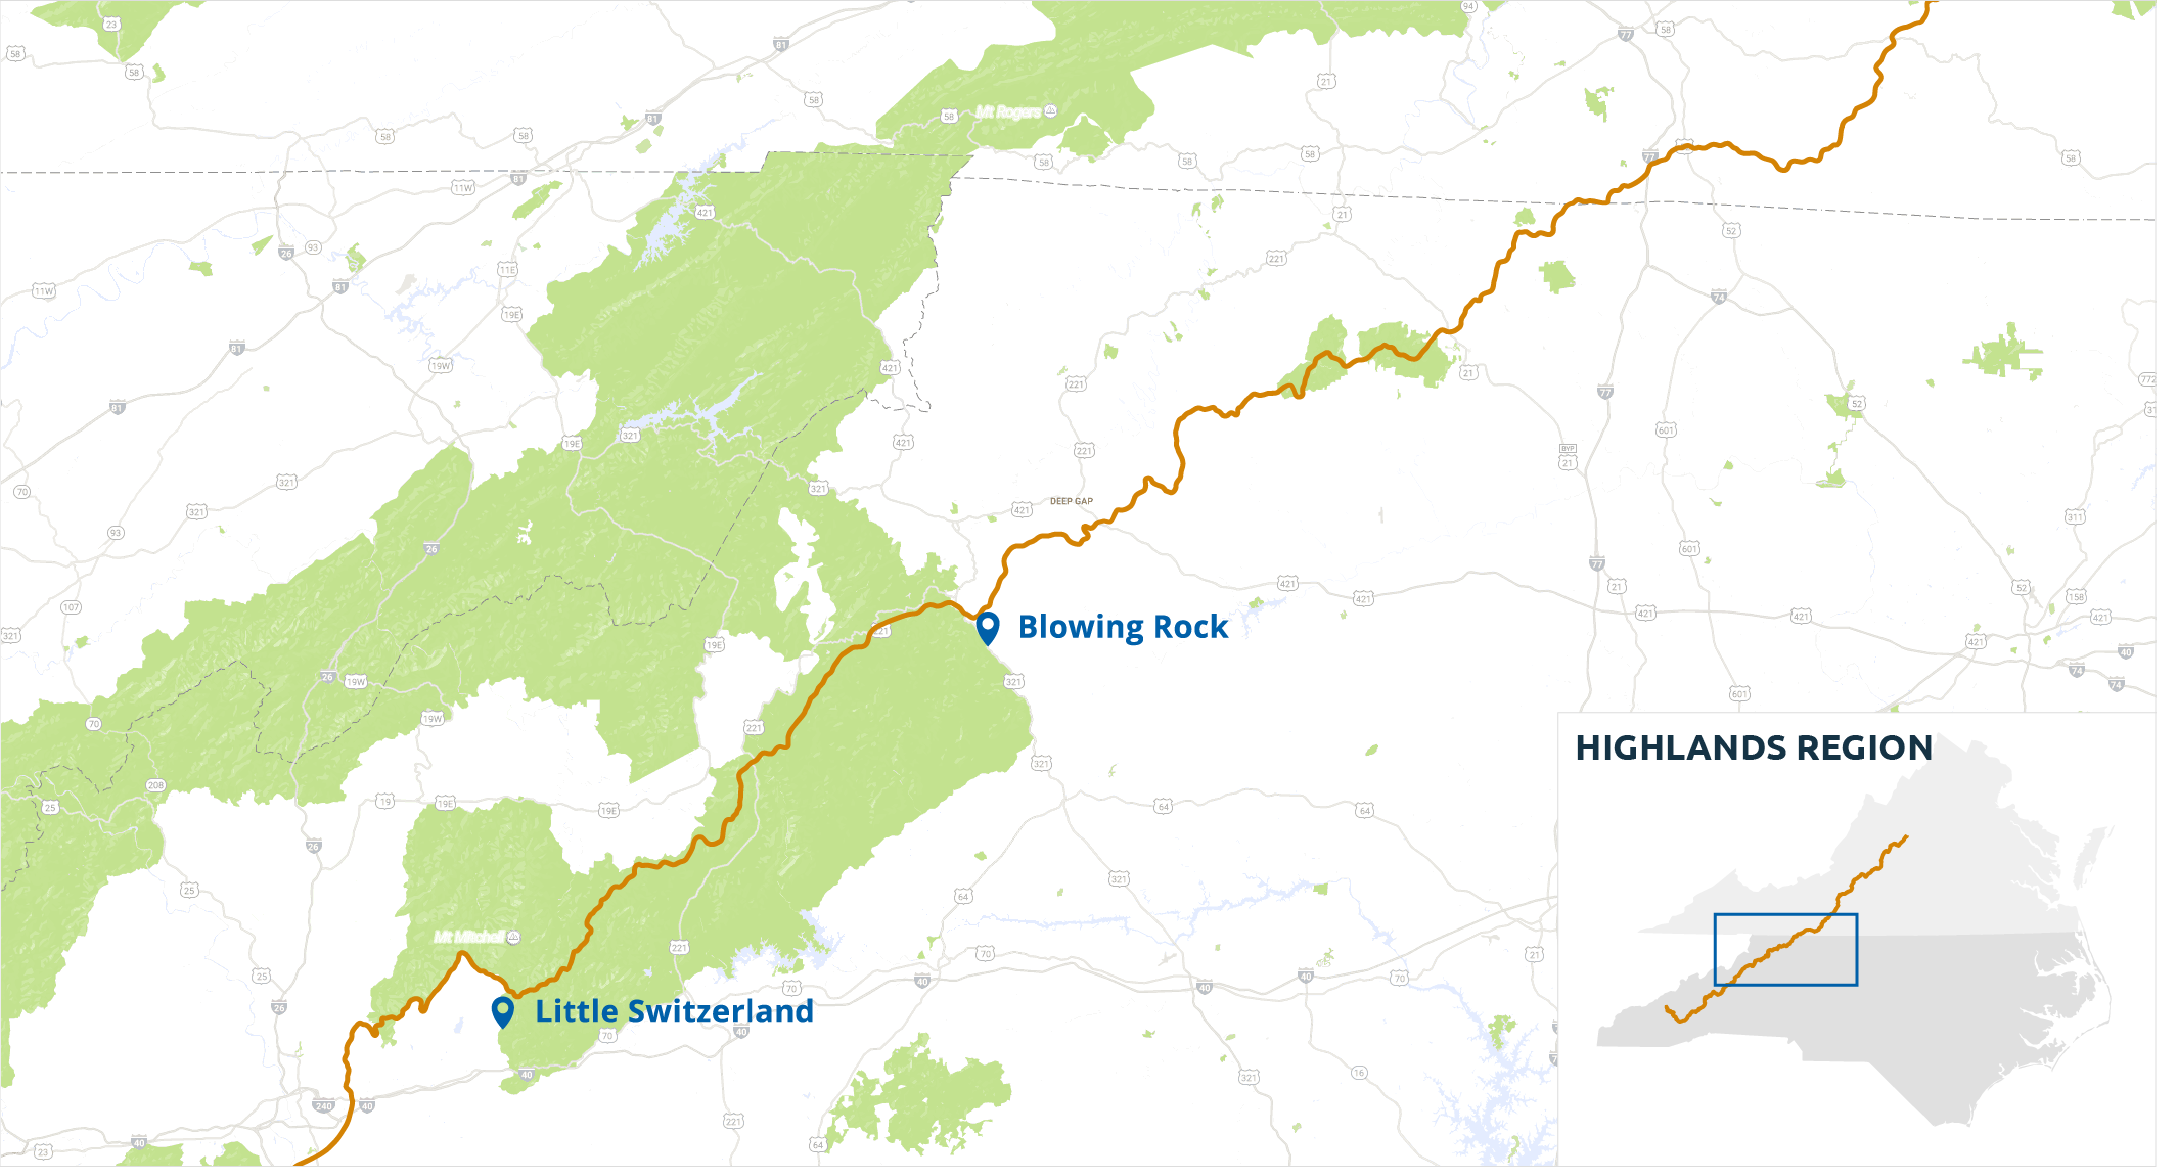 Highlands Region - Blue Ridge Parkway